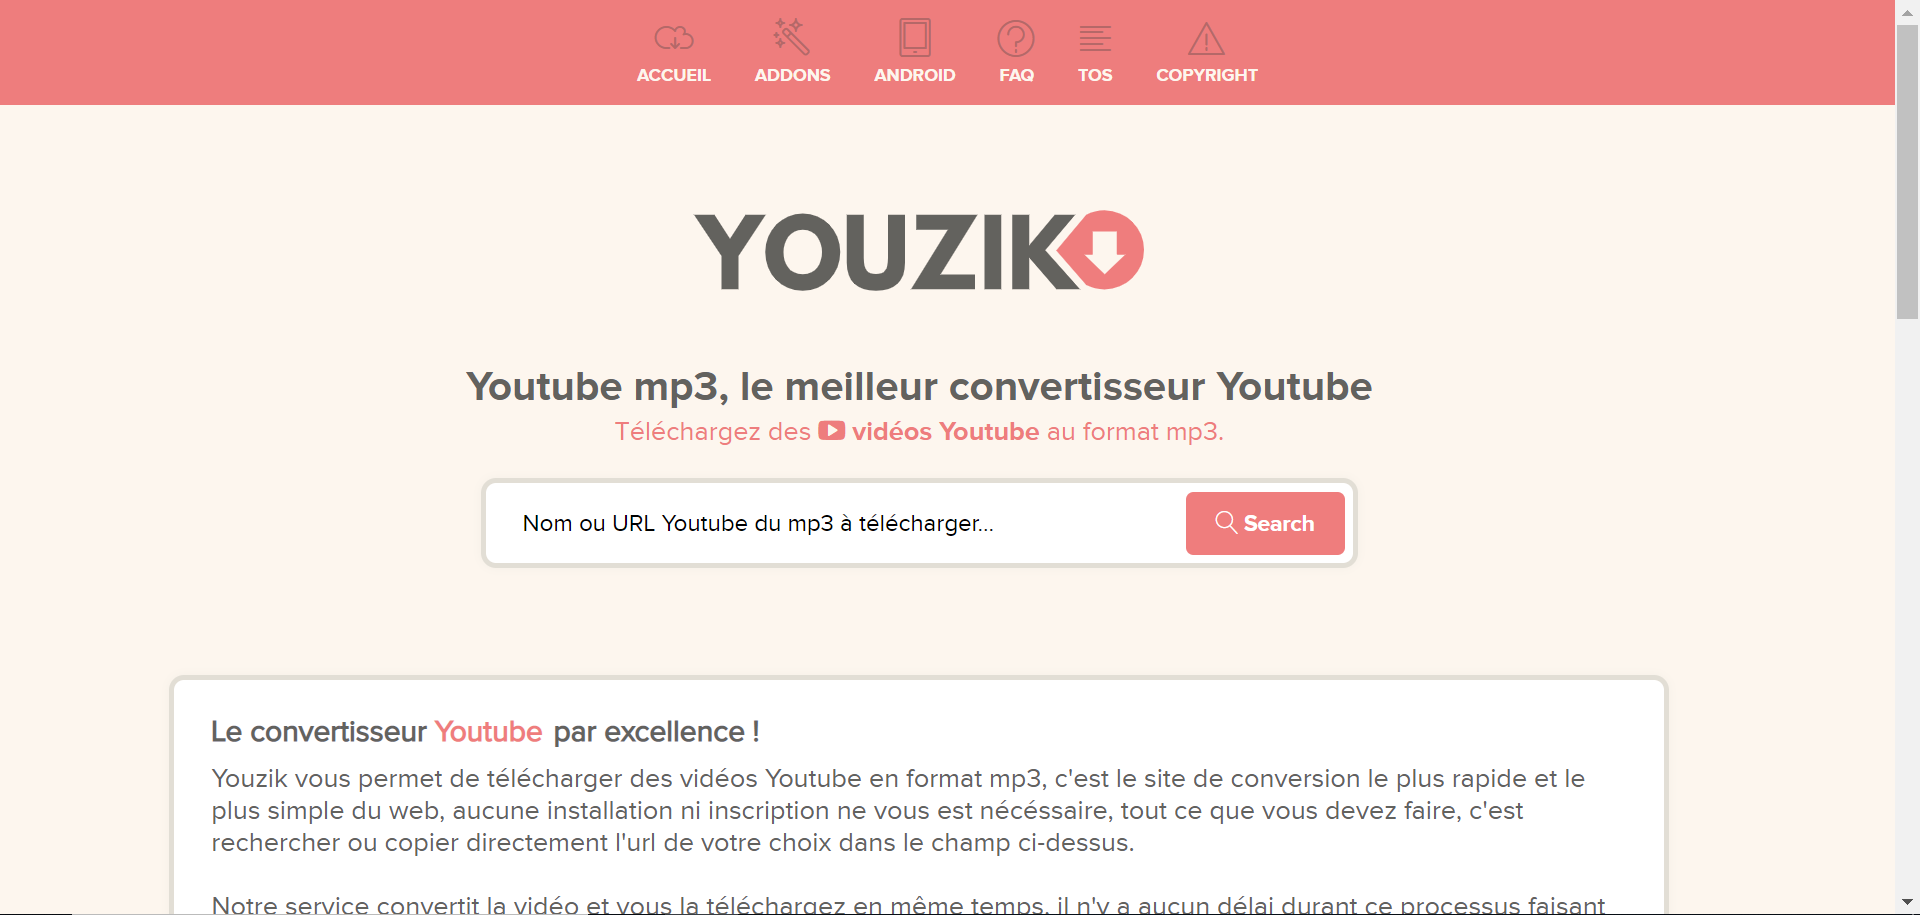 Youzik-Convertisseur-Youtube-mp3